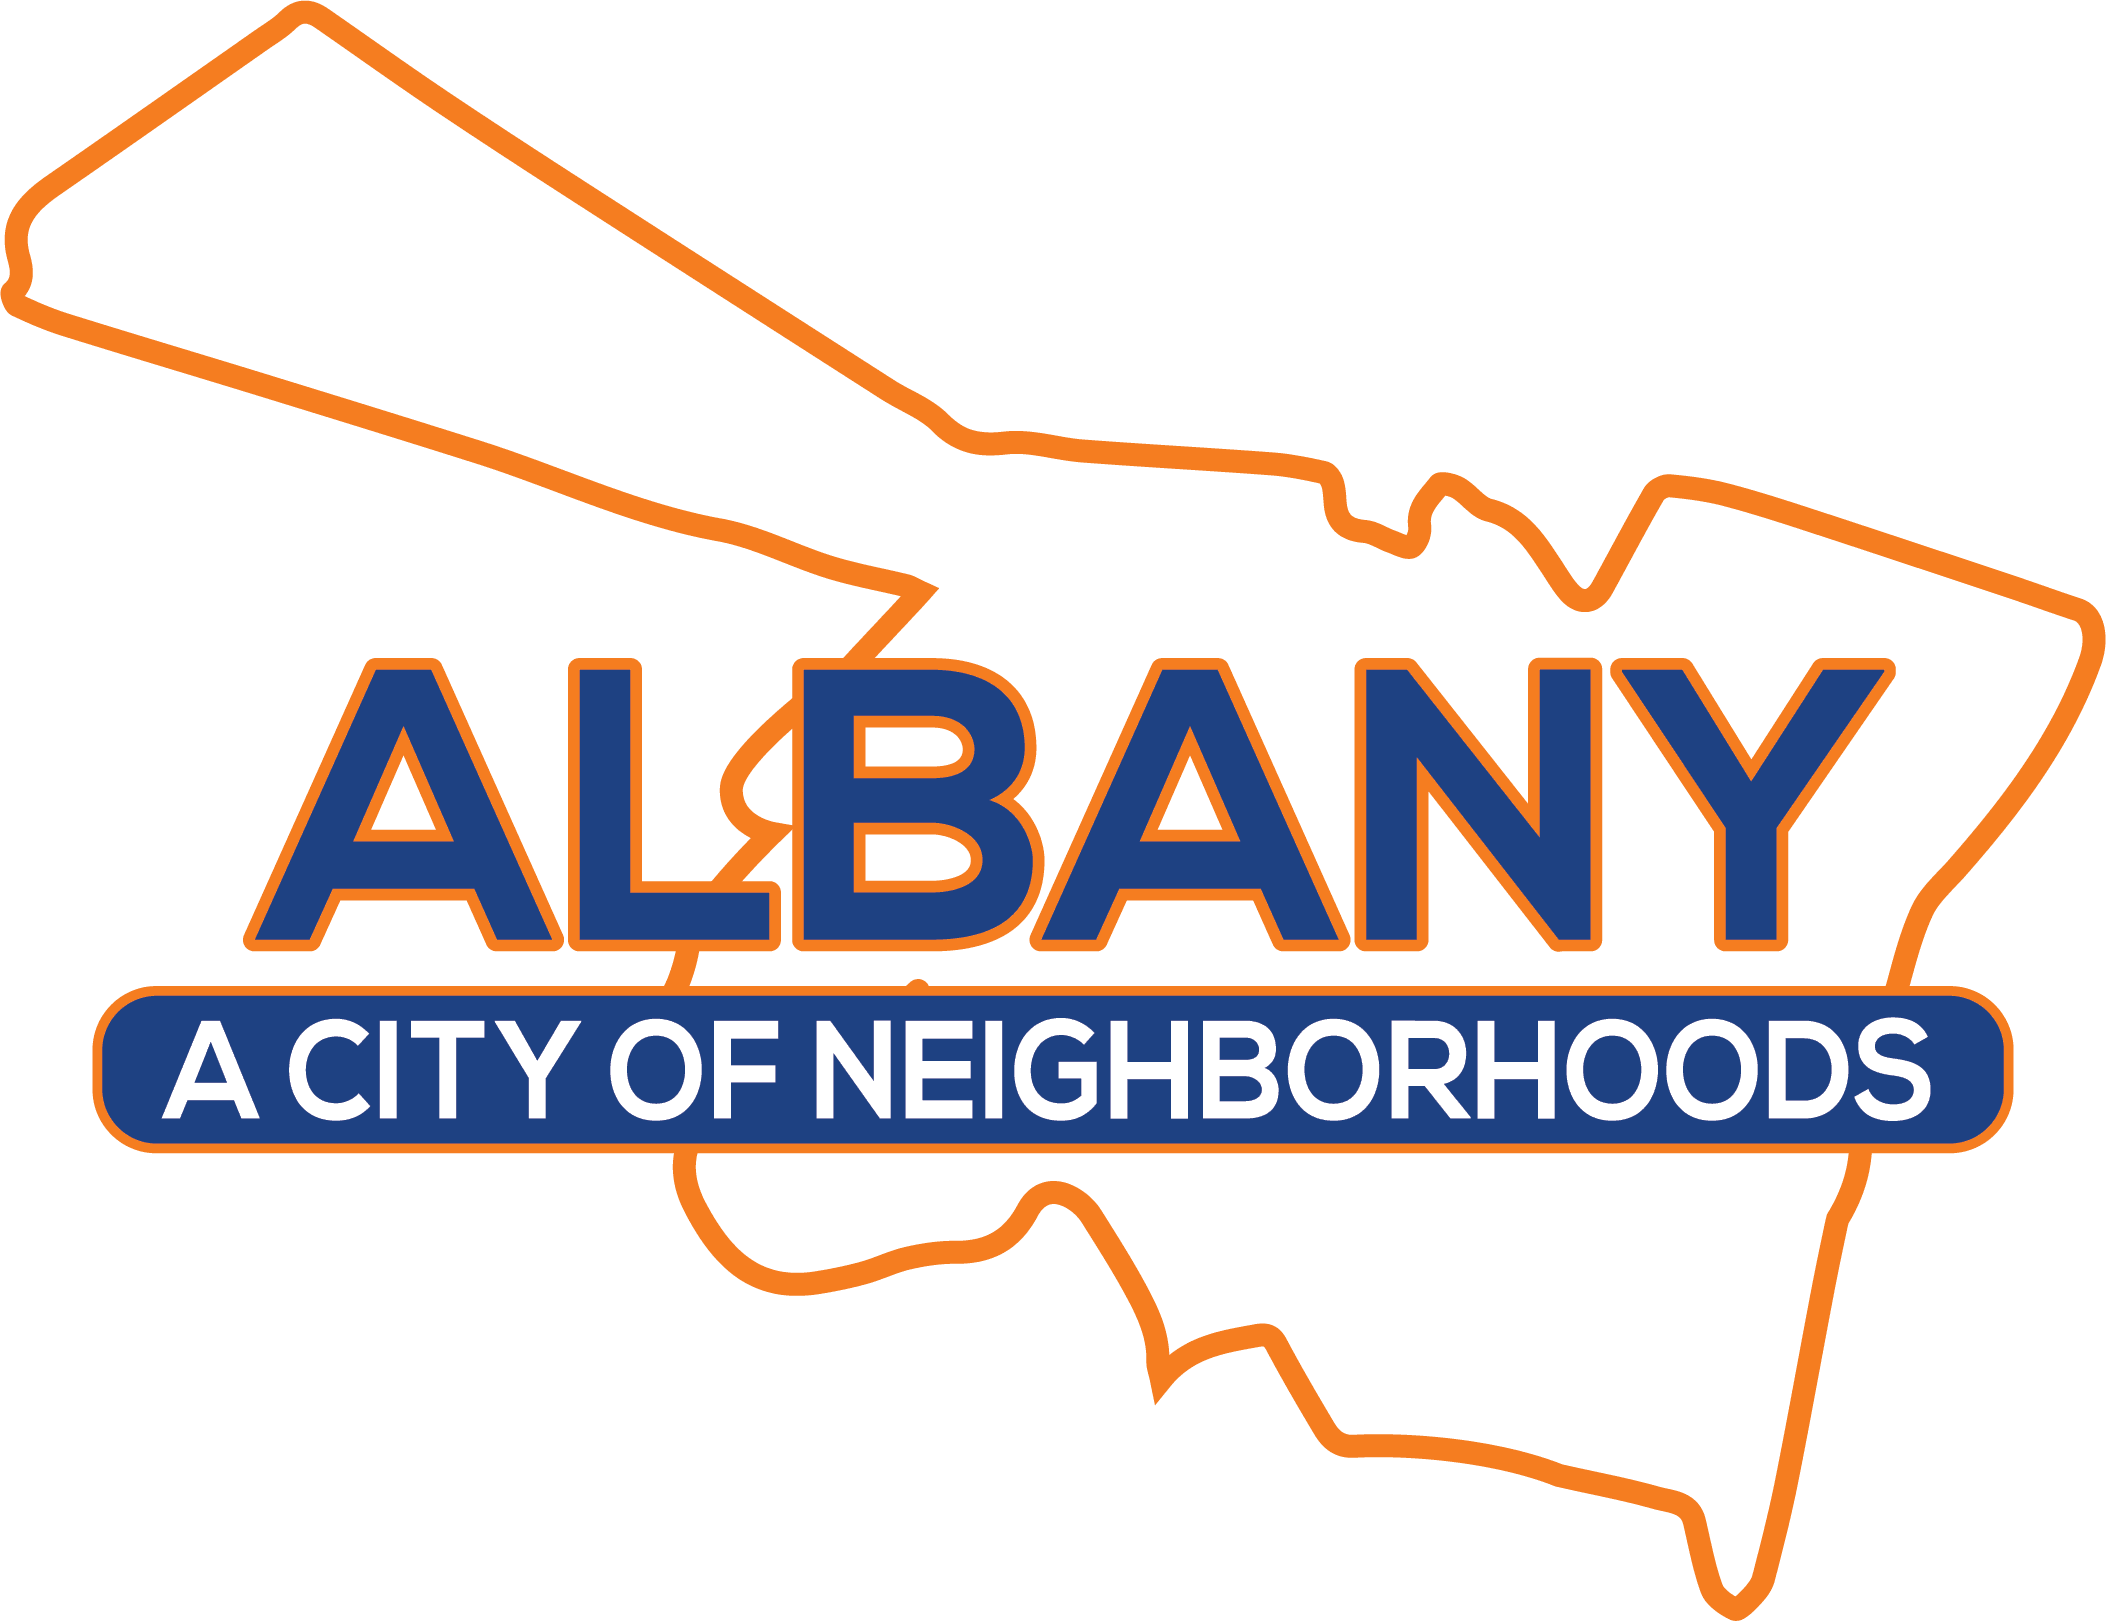 albany-city-of-neighborhoods4 (PDF)